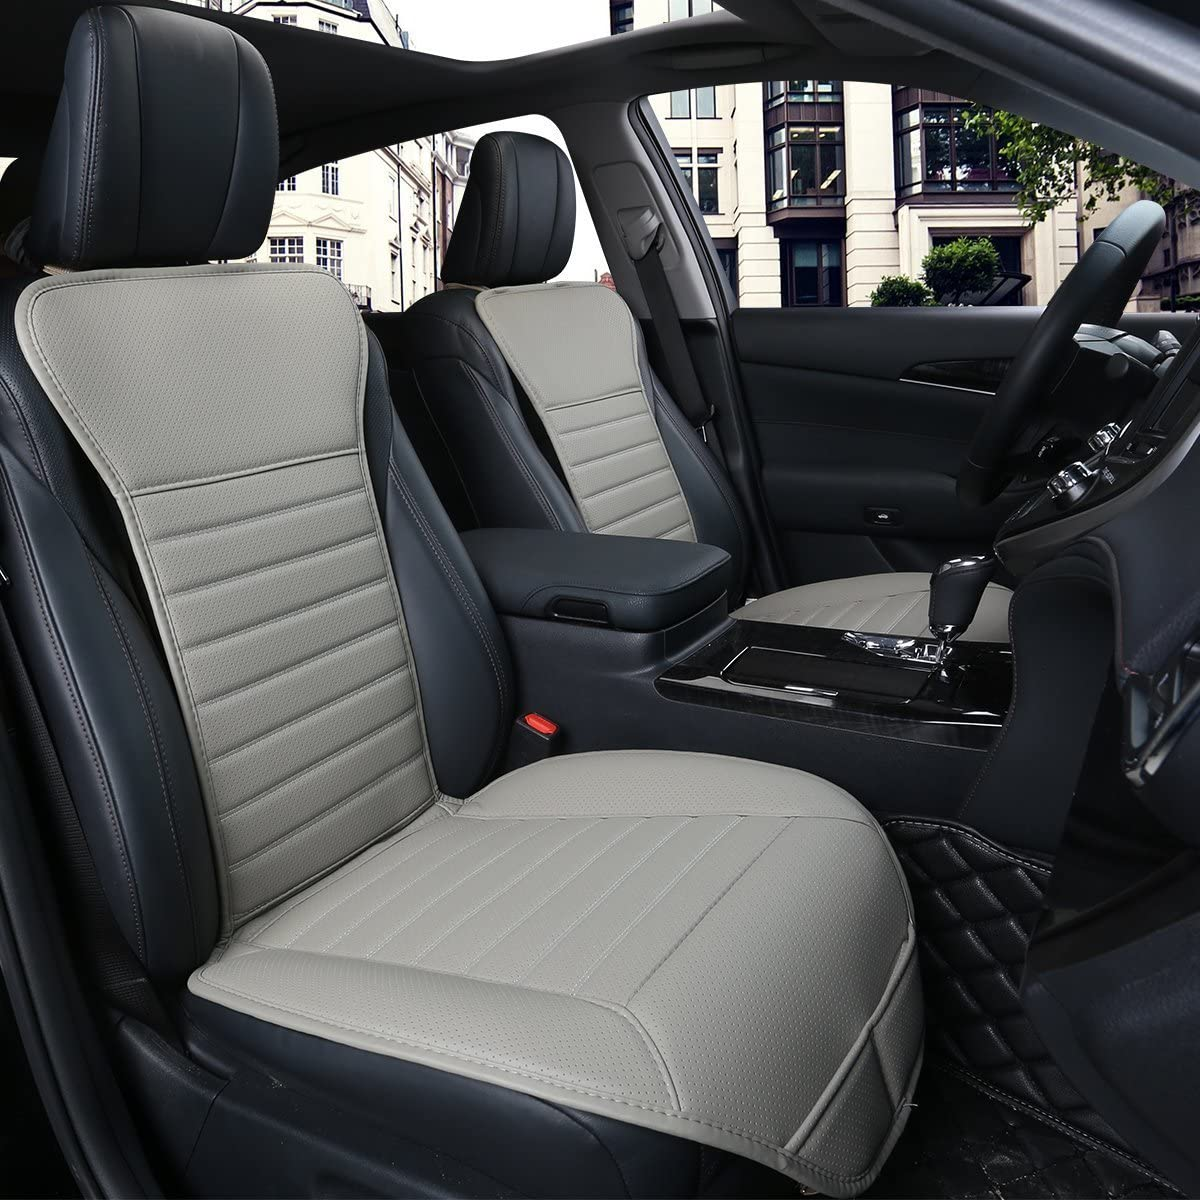 DINKANUR 2 PCS Edge Wrapping Auto Seat Covers PU leather Car Seat Covers Fit Car Seat Protectors 3D-black Without Backrest Front Seat Covers for Cars wide 53cm /× deep 54cm